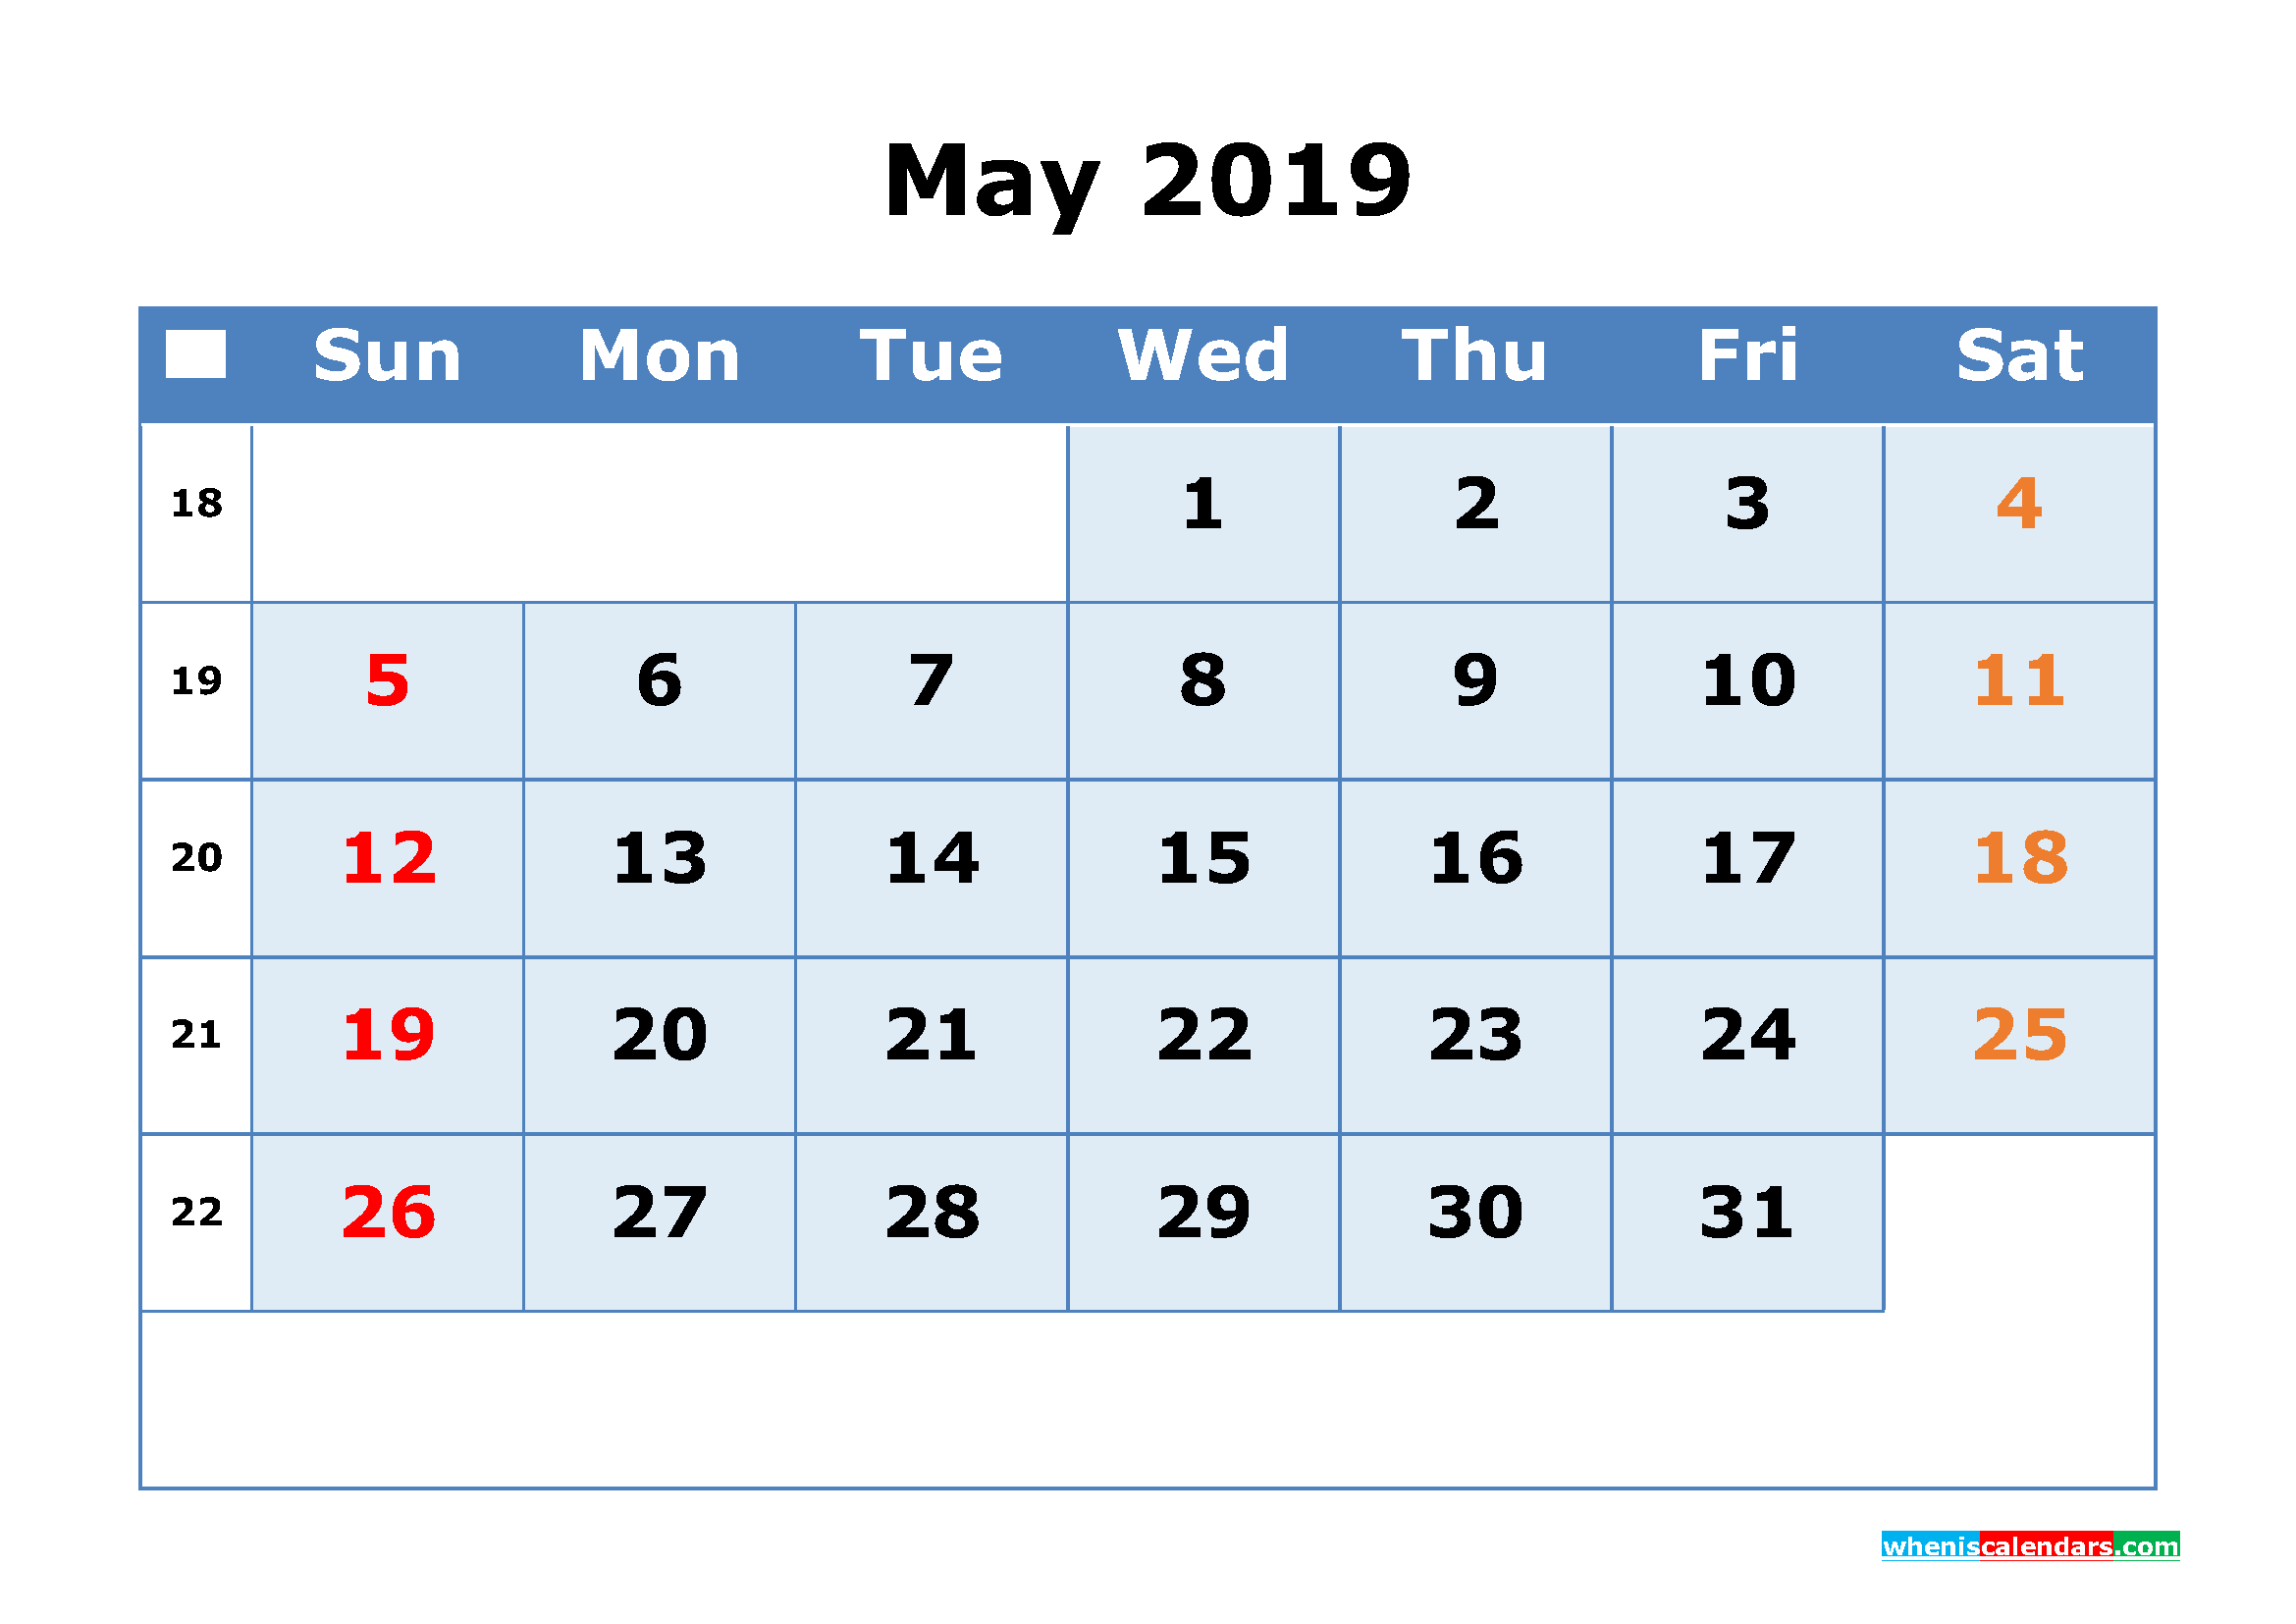 May 2019 Printable Calendar with Week Numbers as PDF, JPG